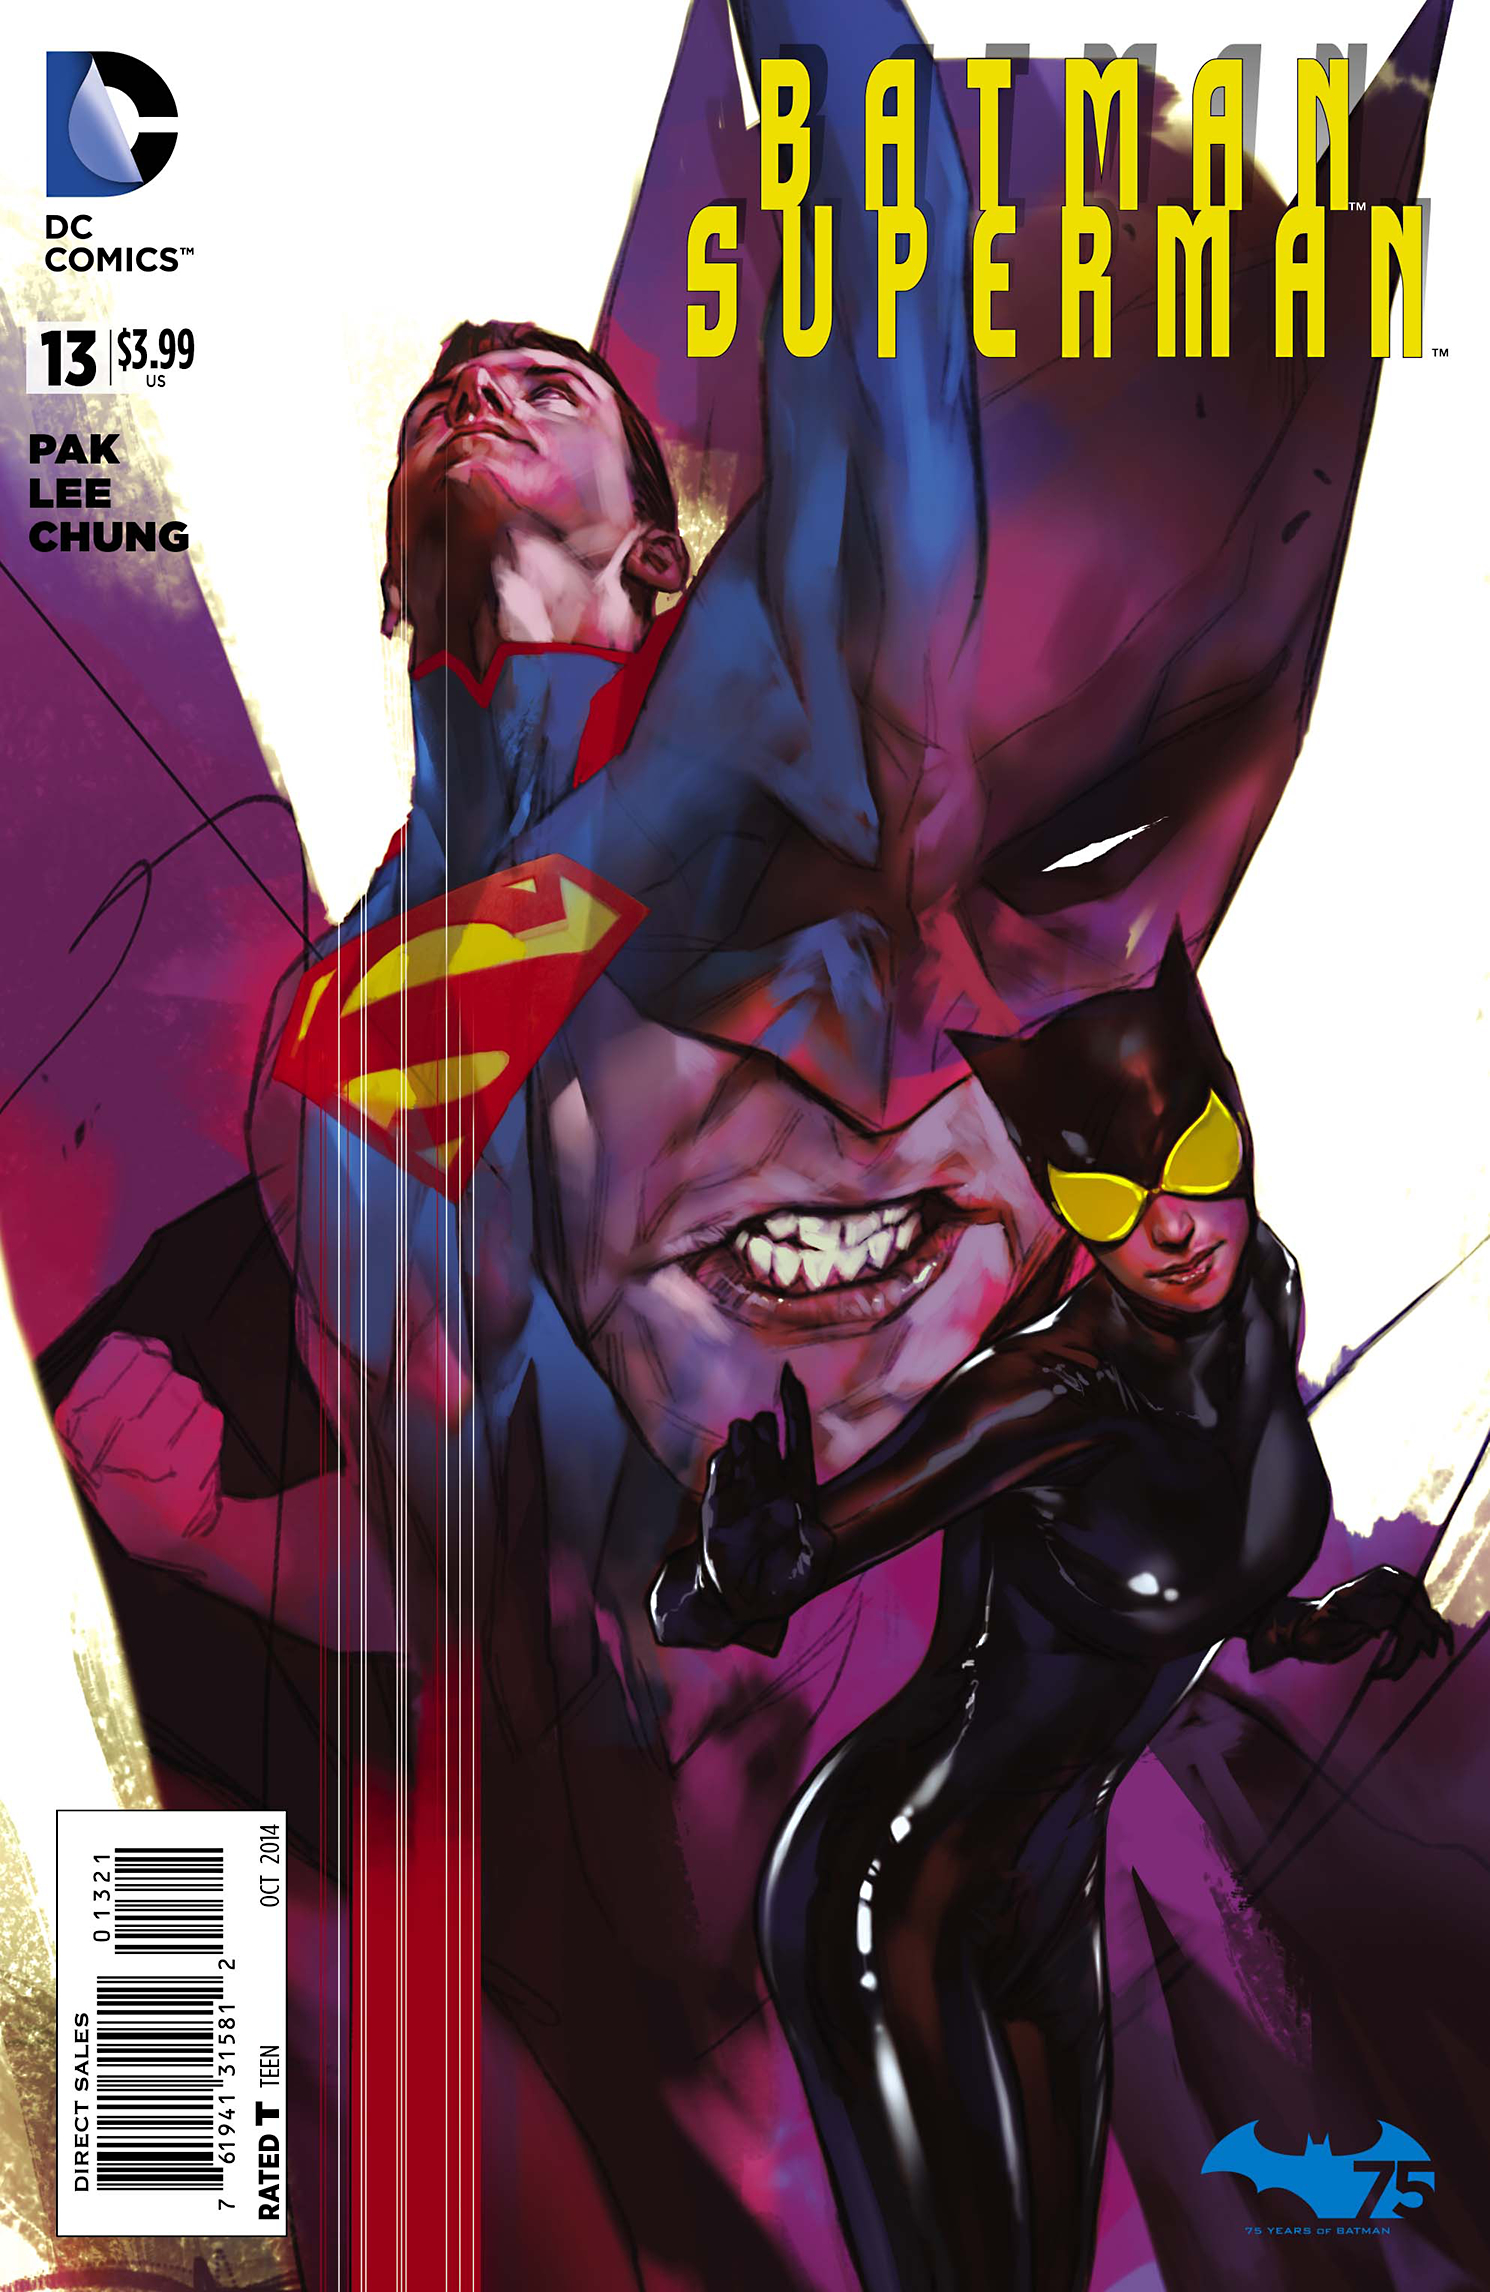 BATMAN SUPERMAN #13 VAR ED